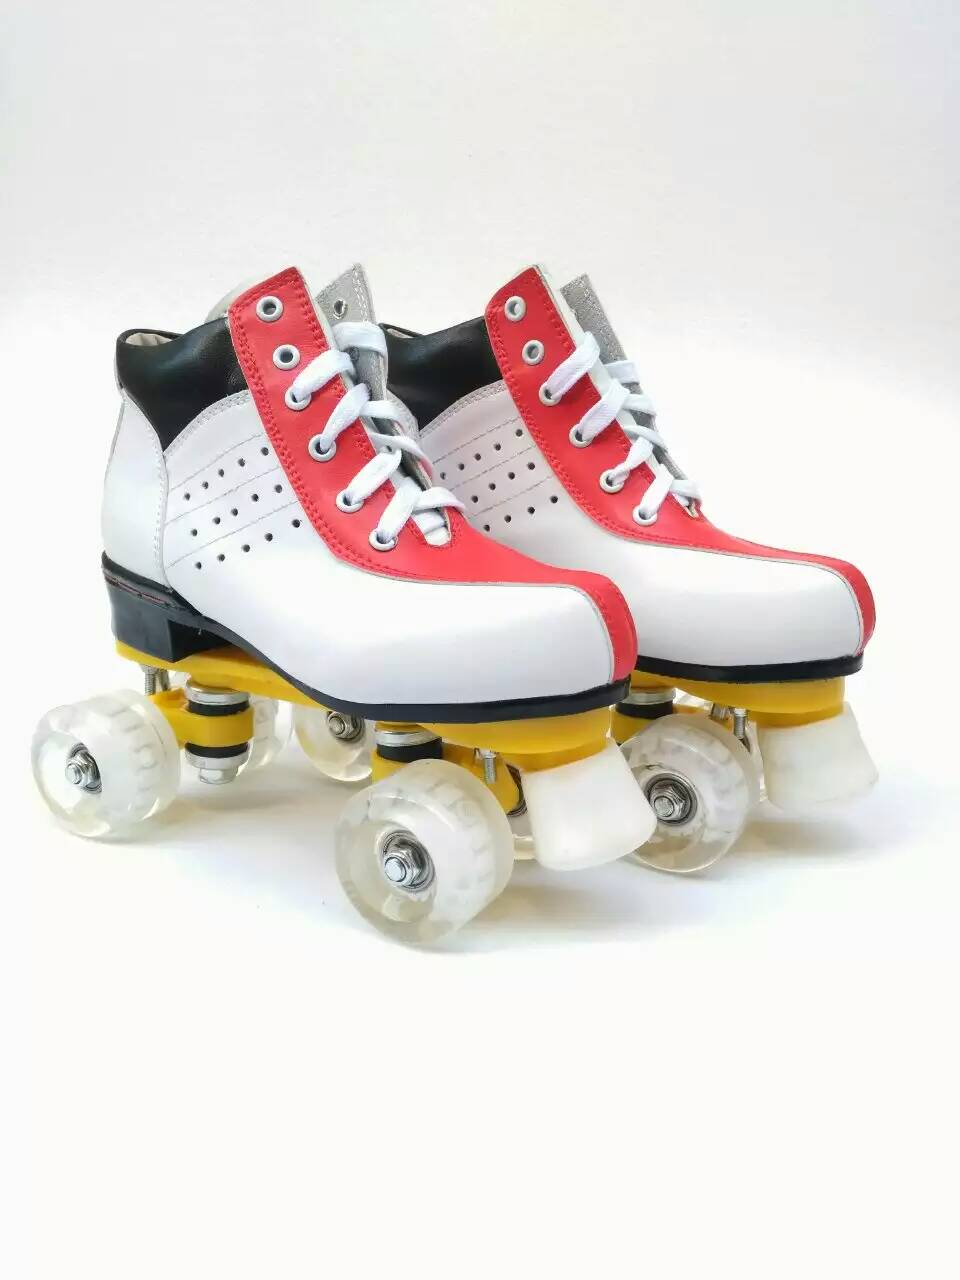 2019 New Style Arrival Wholesale Price 4 Wheel Speed Roller Skates Shoes Free Shipping